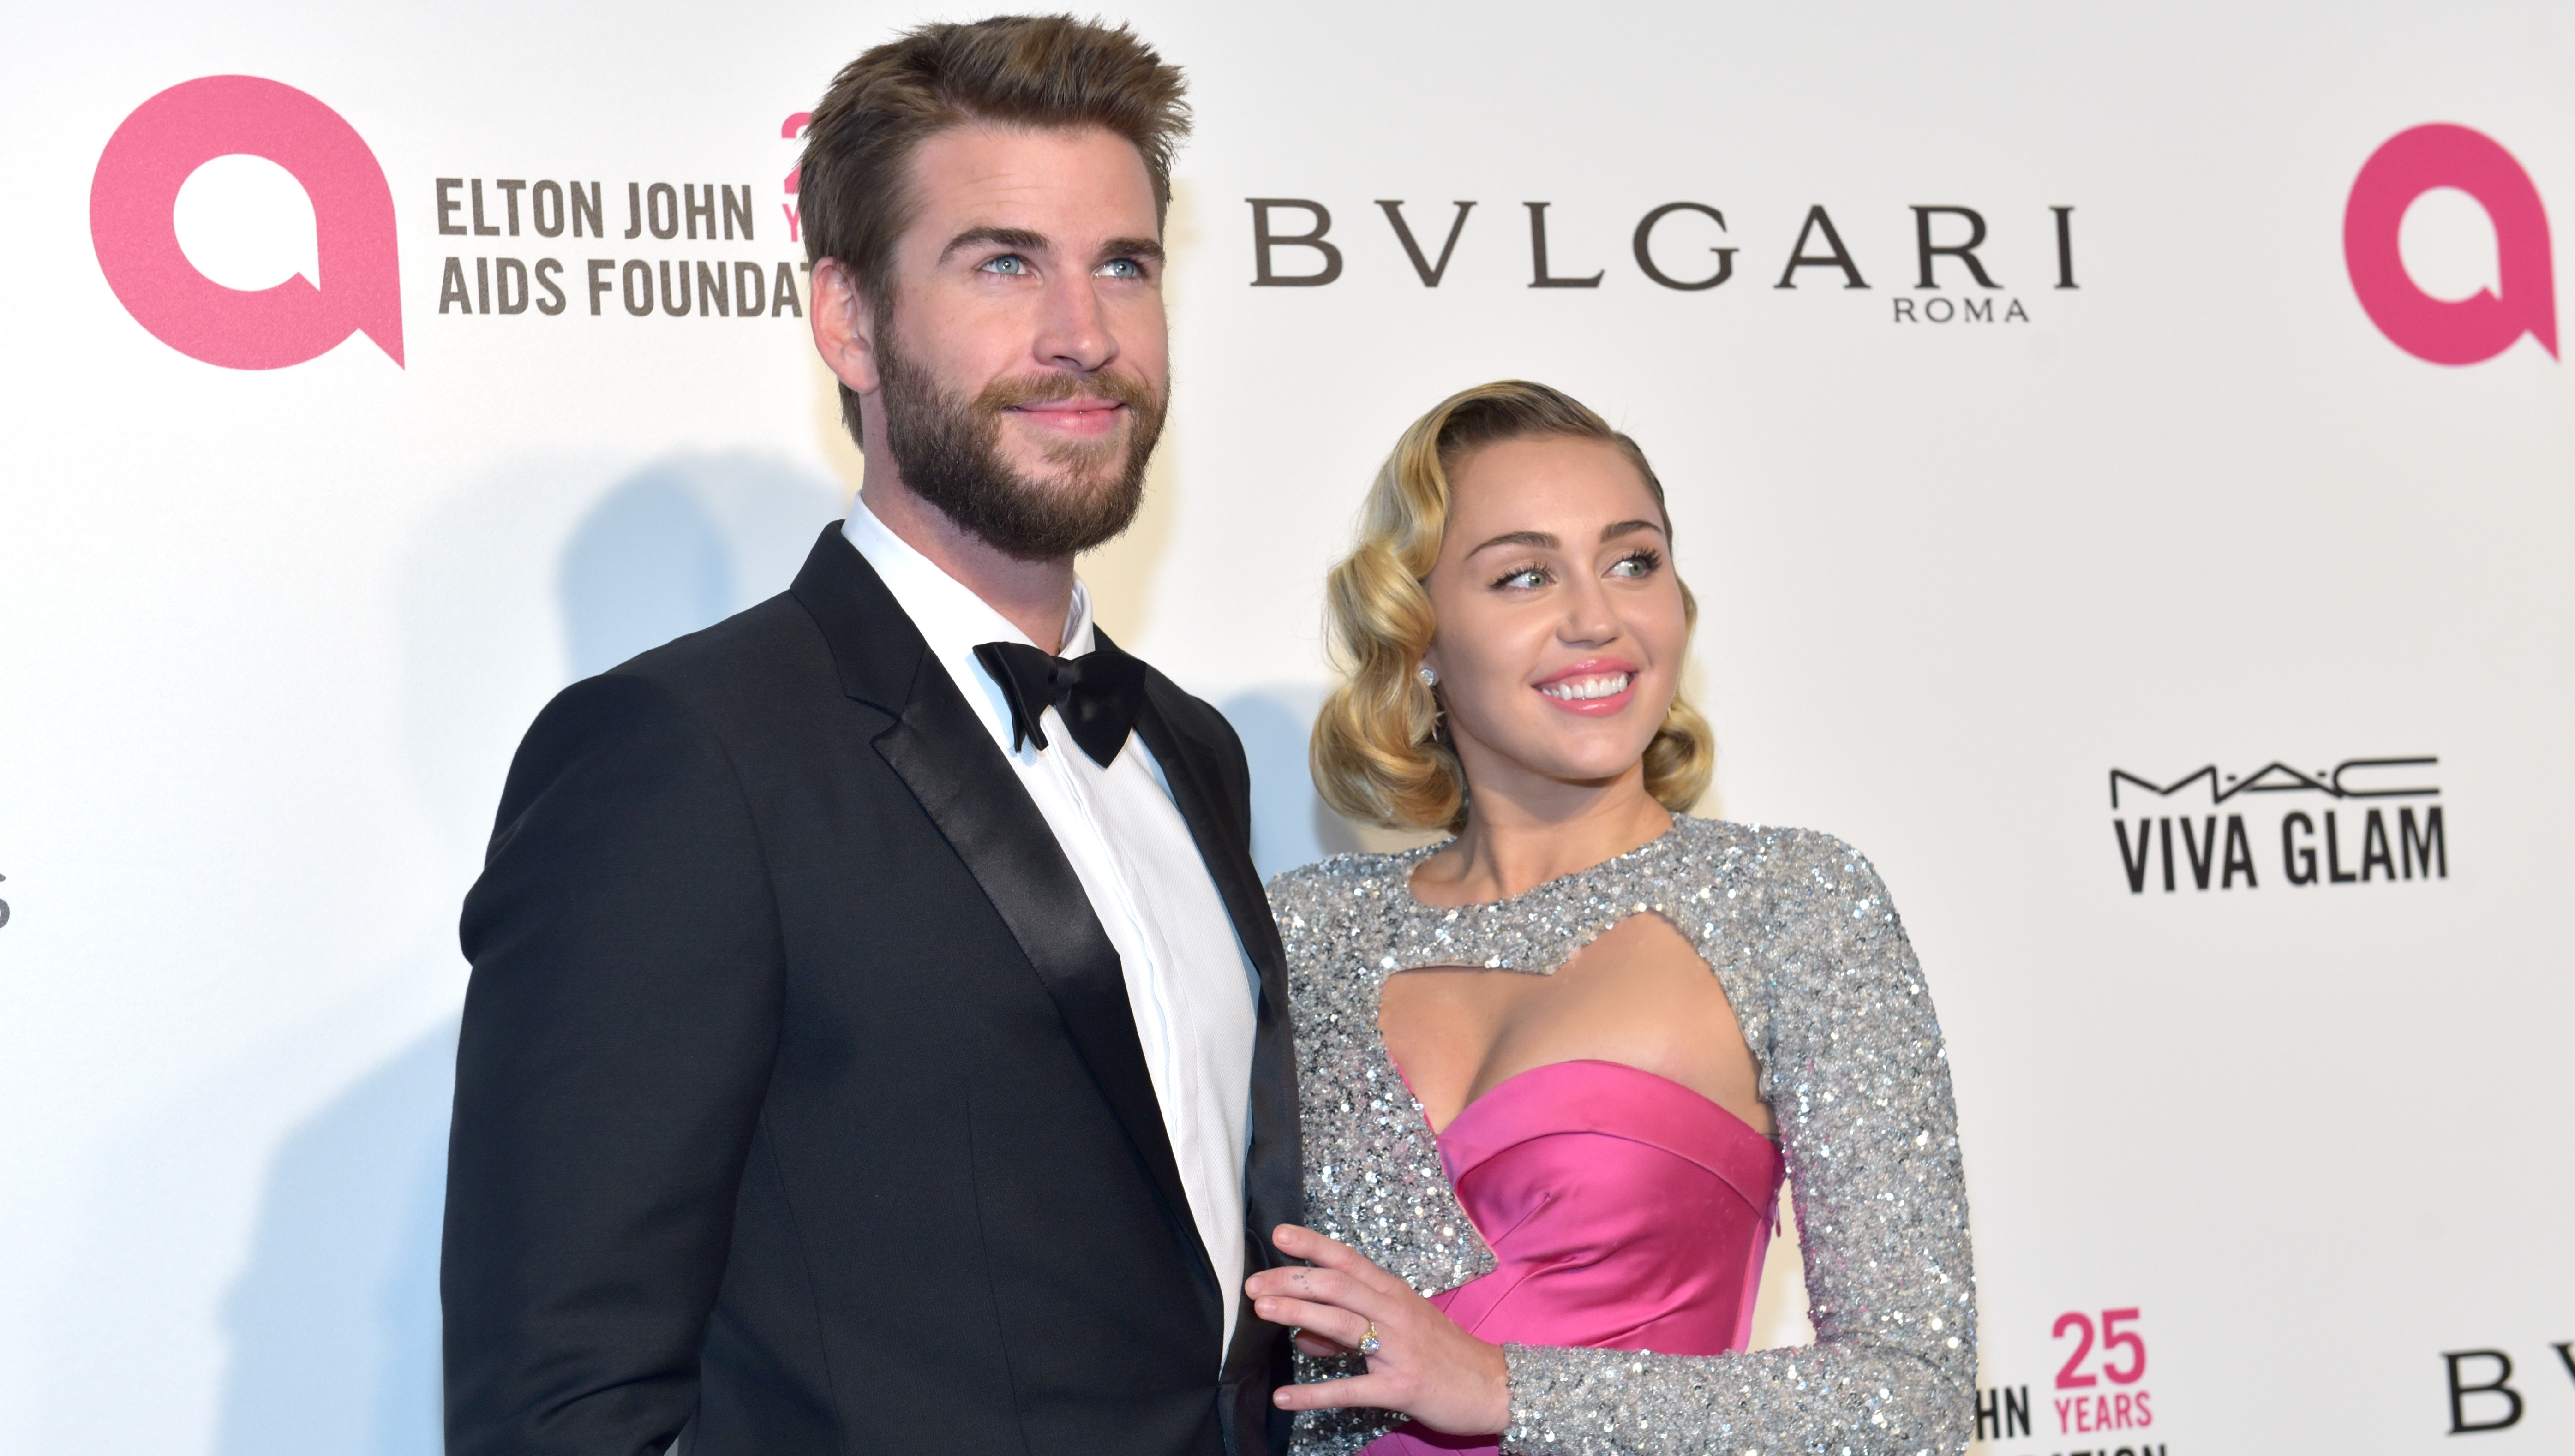 Liam Hemsworth, Tuxedo, Miley Cyrus, Pink and Silver Gown, Posing, Smiling